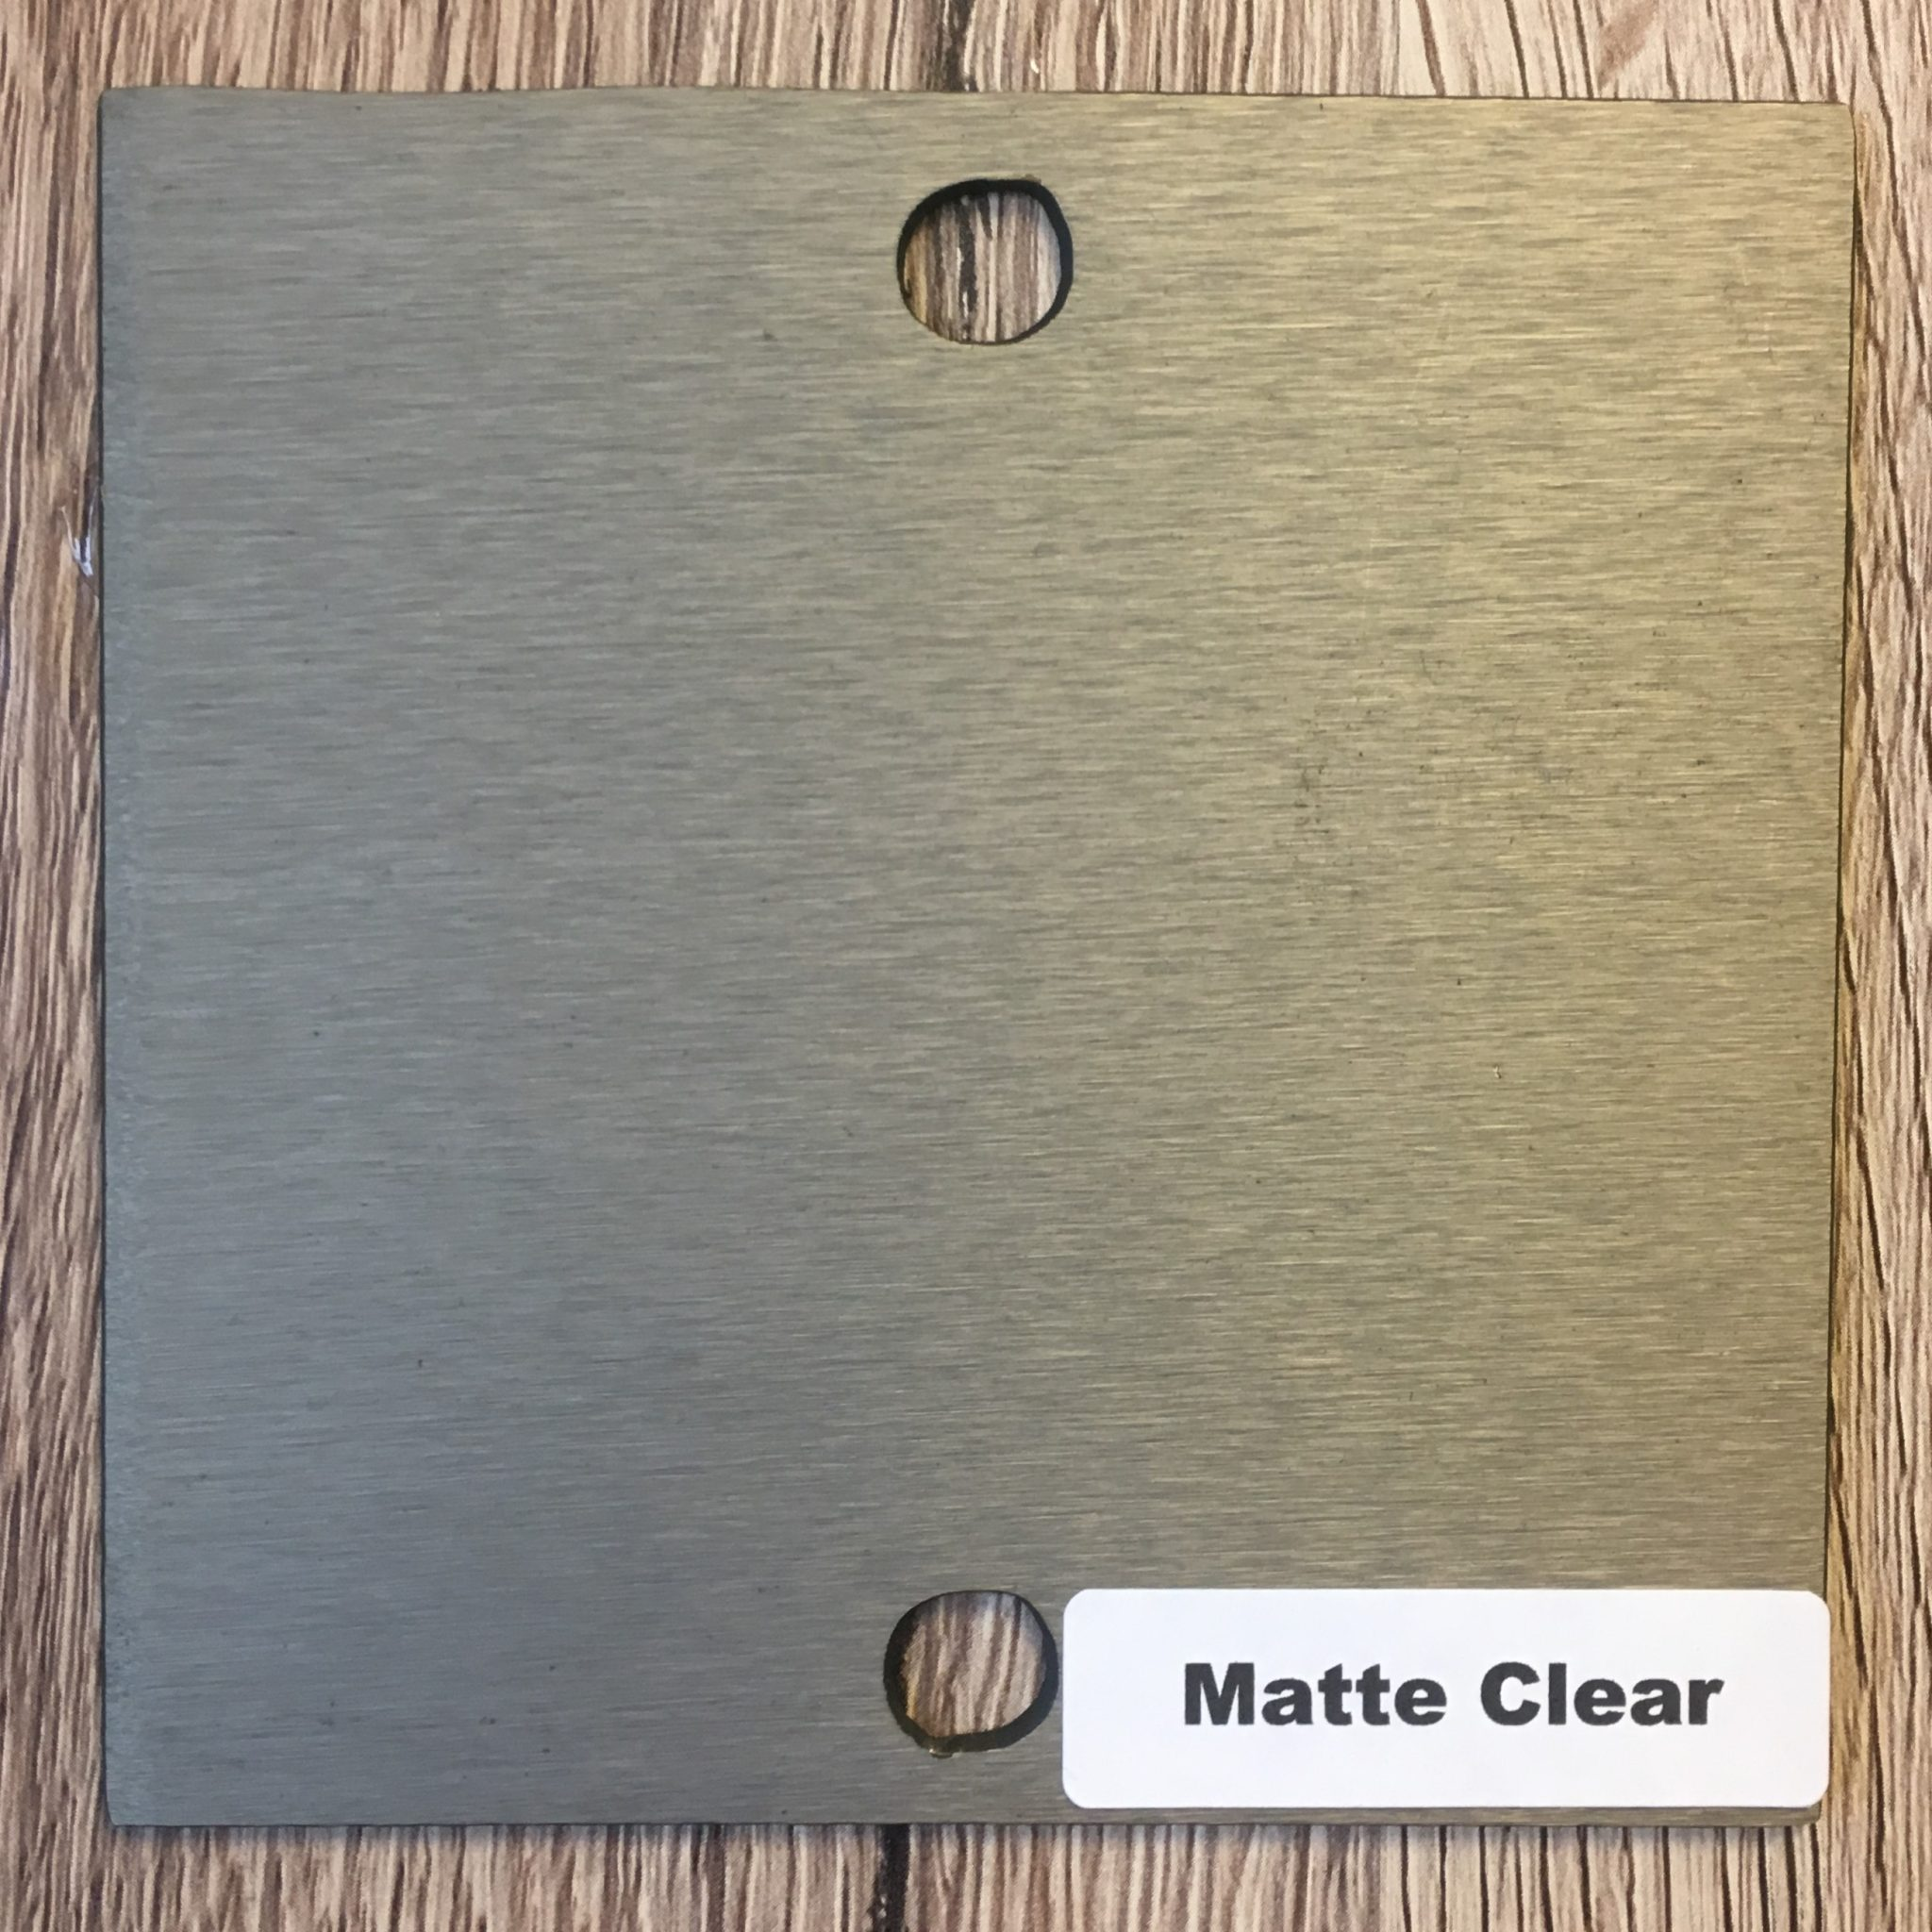 NEW - MATTE CLEAR